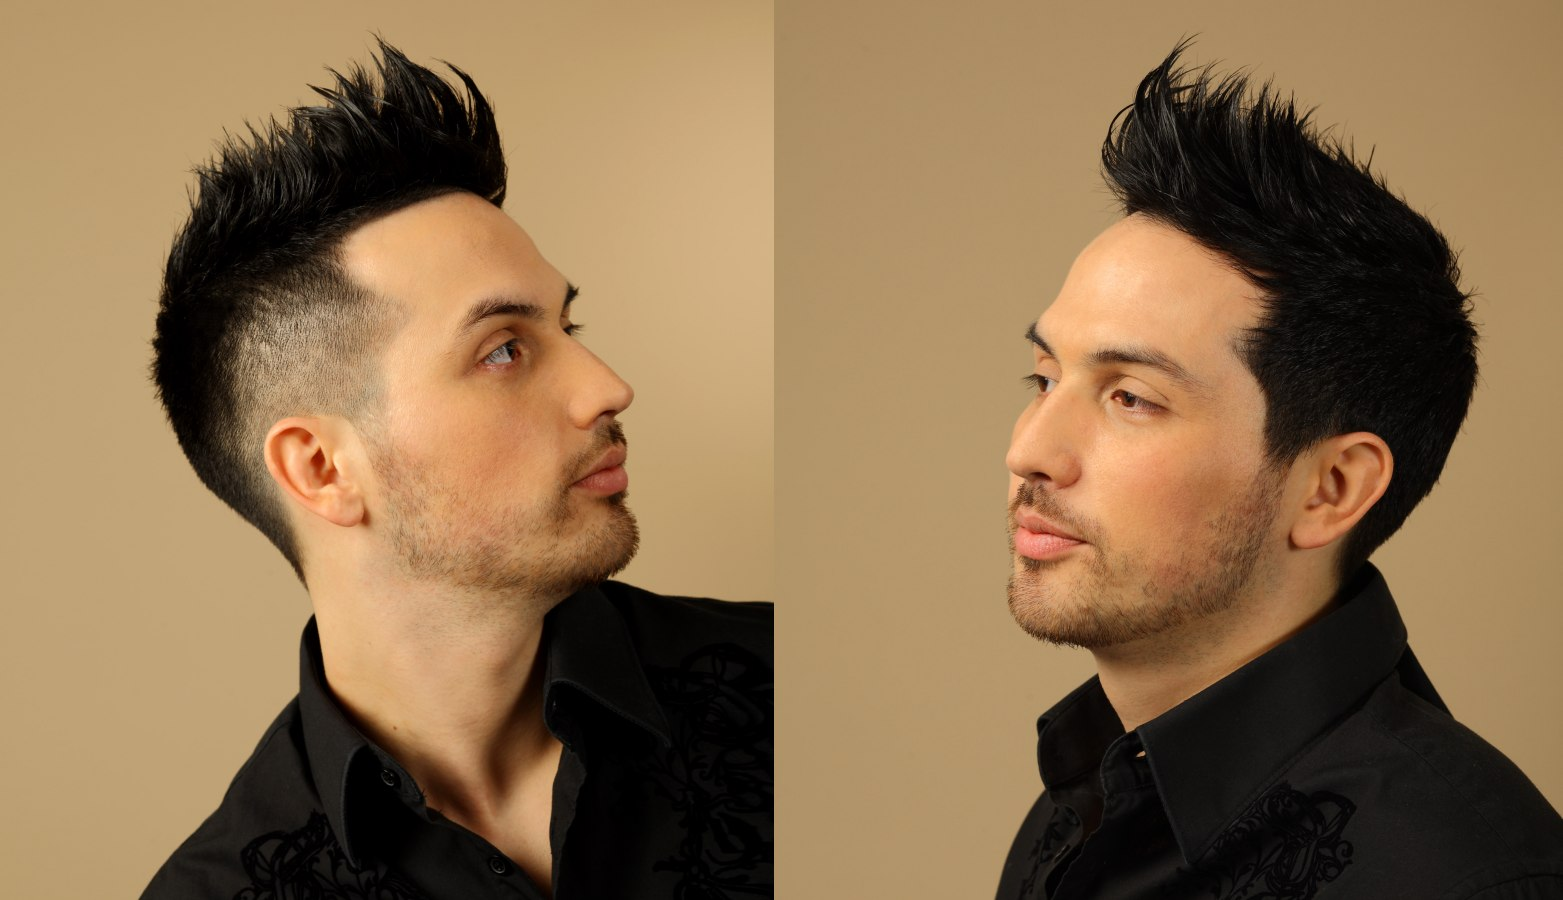 Buzz Cut Hair Styles: Mohawk Hairstyle With Buzzed Sides And Buzz Cut Neckline